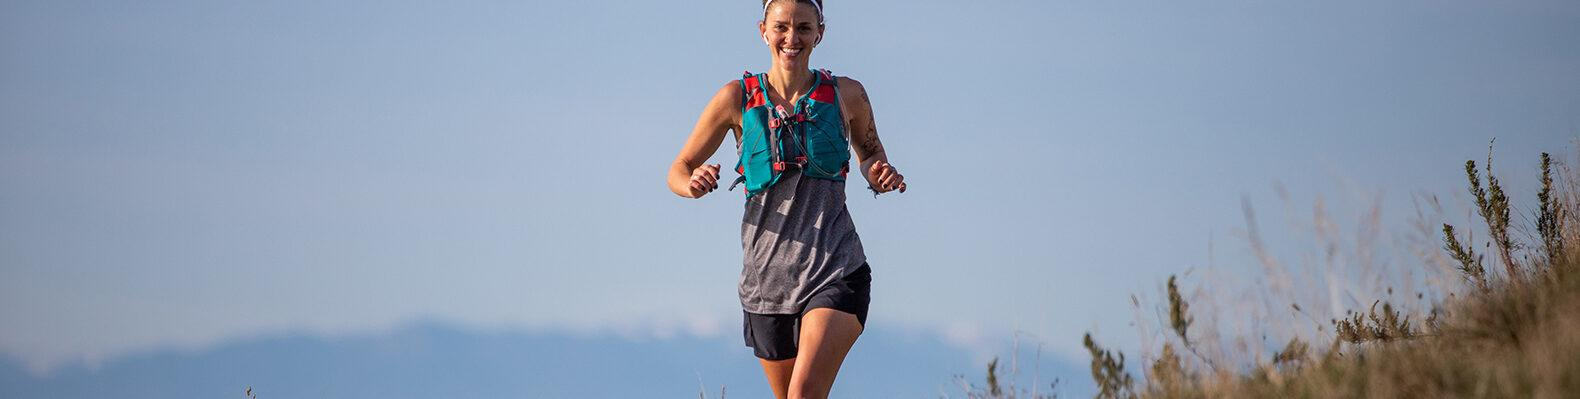 person running and smiling with ocean and mountains in background